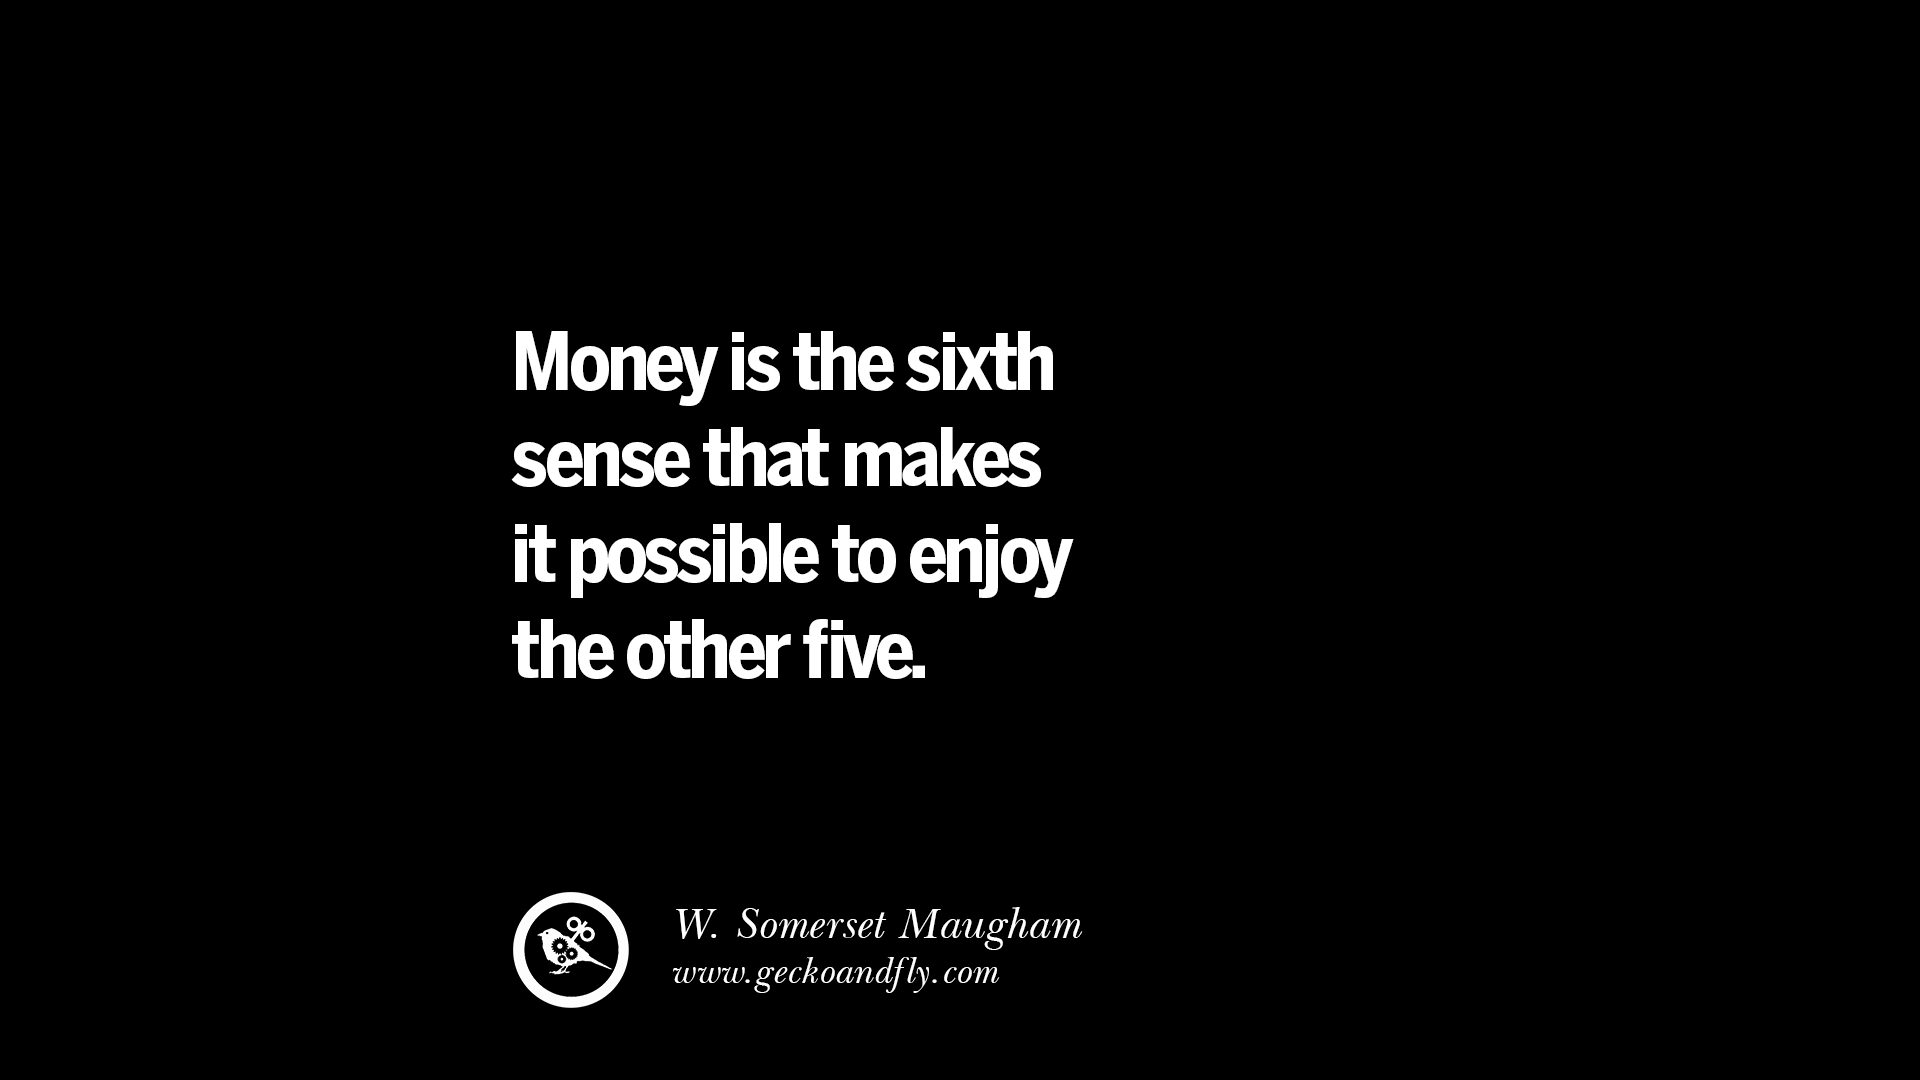 10 Golden Rules On Money & 20 Inspiring Quotes About Money